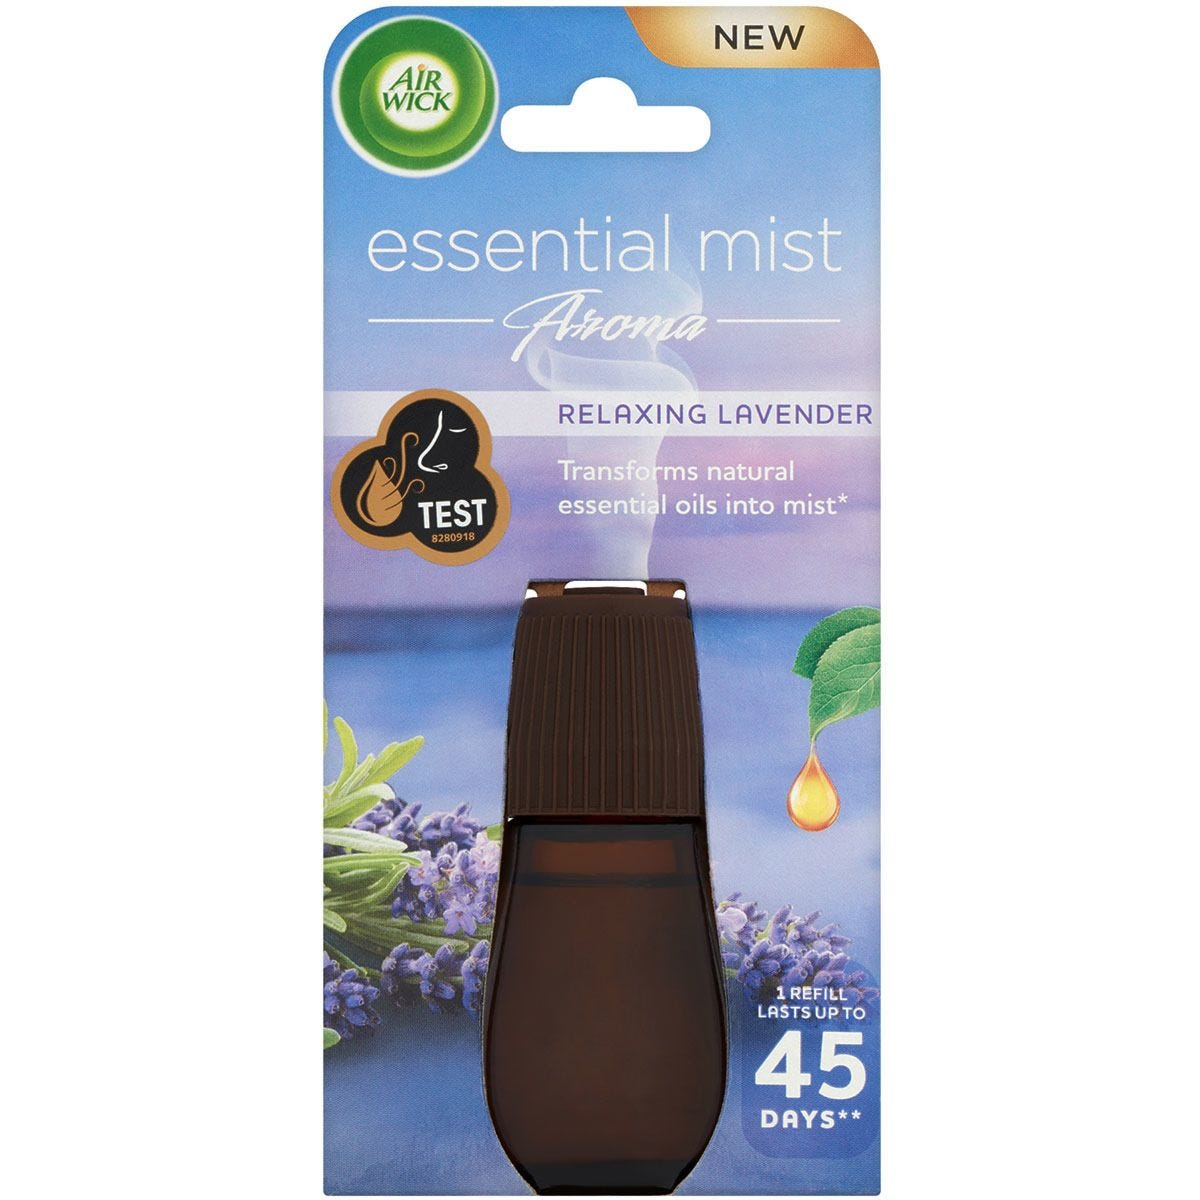 Airwick Essential Mist Refill - Relaxing Lavender